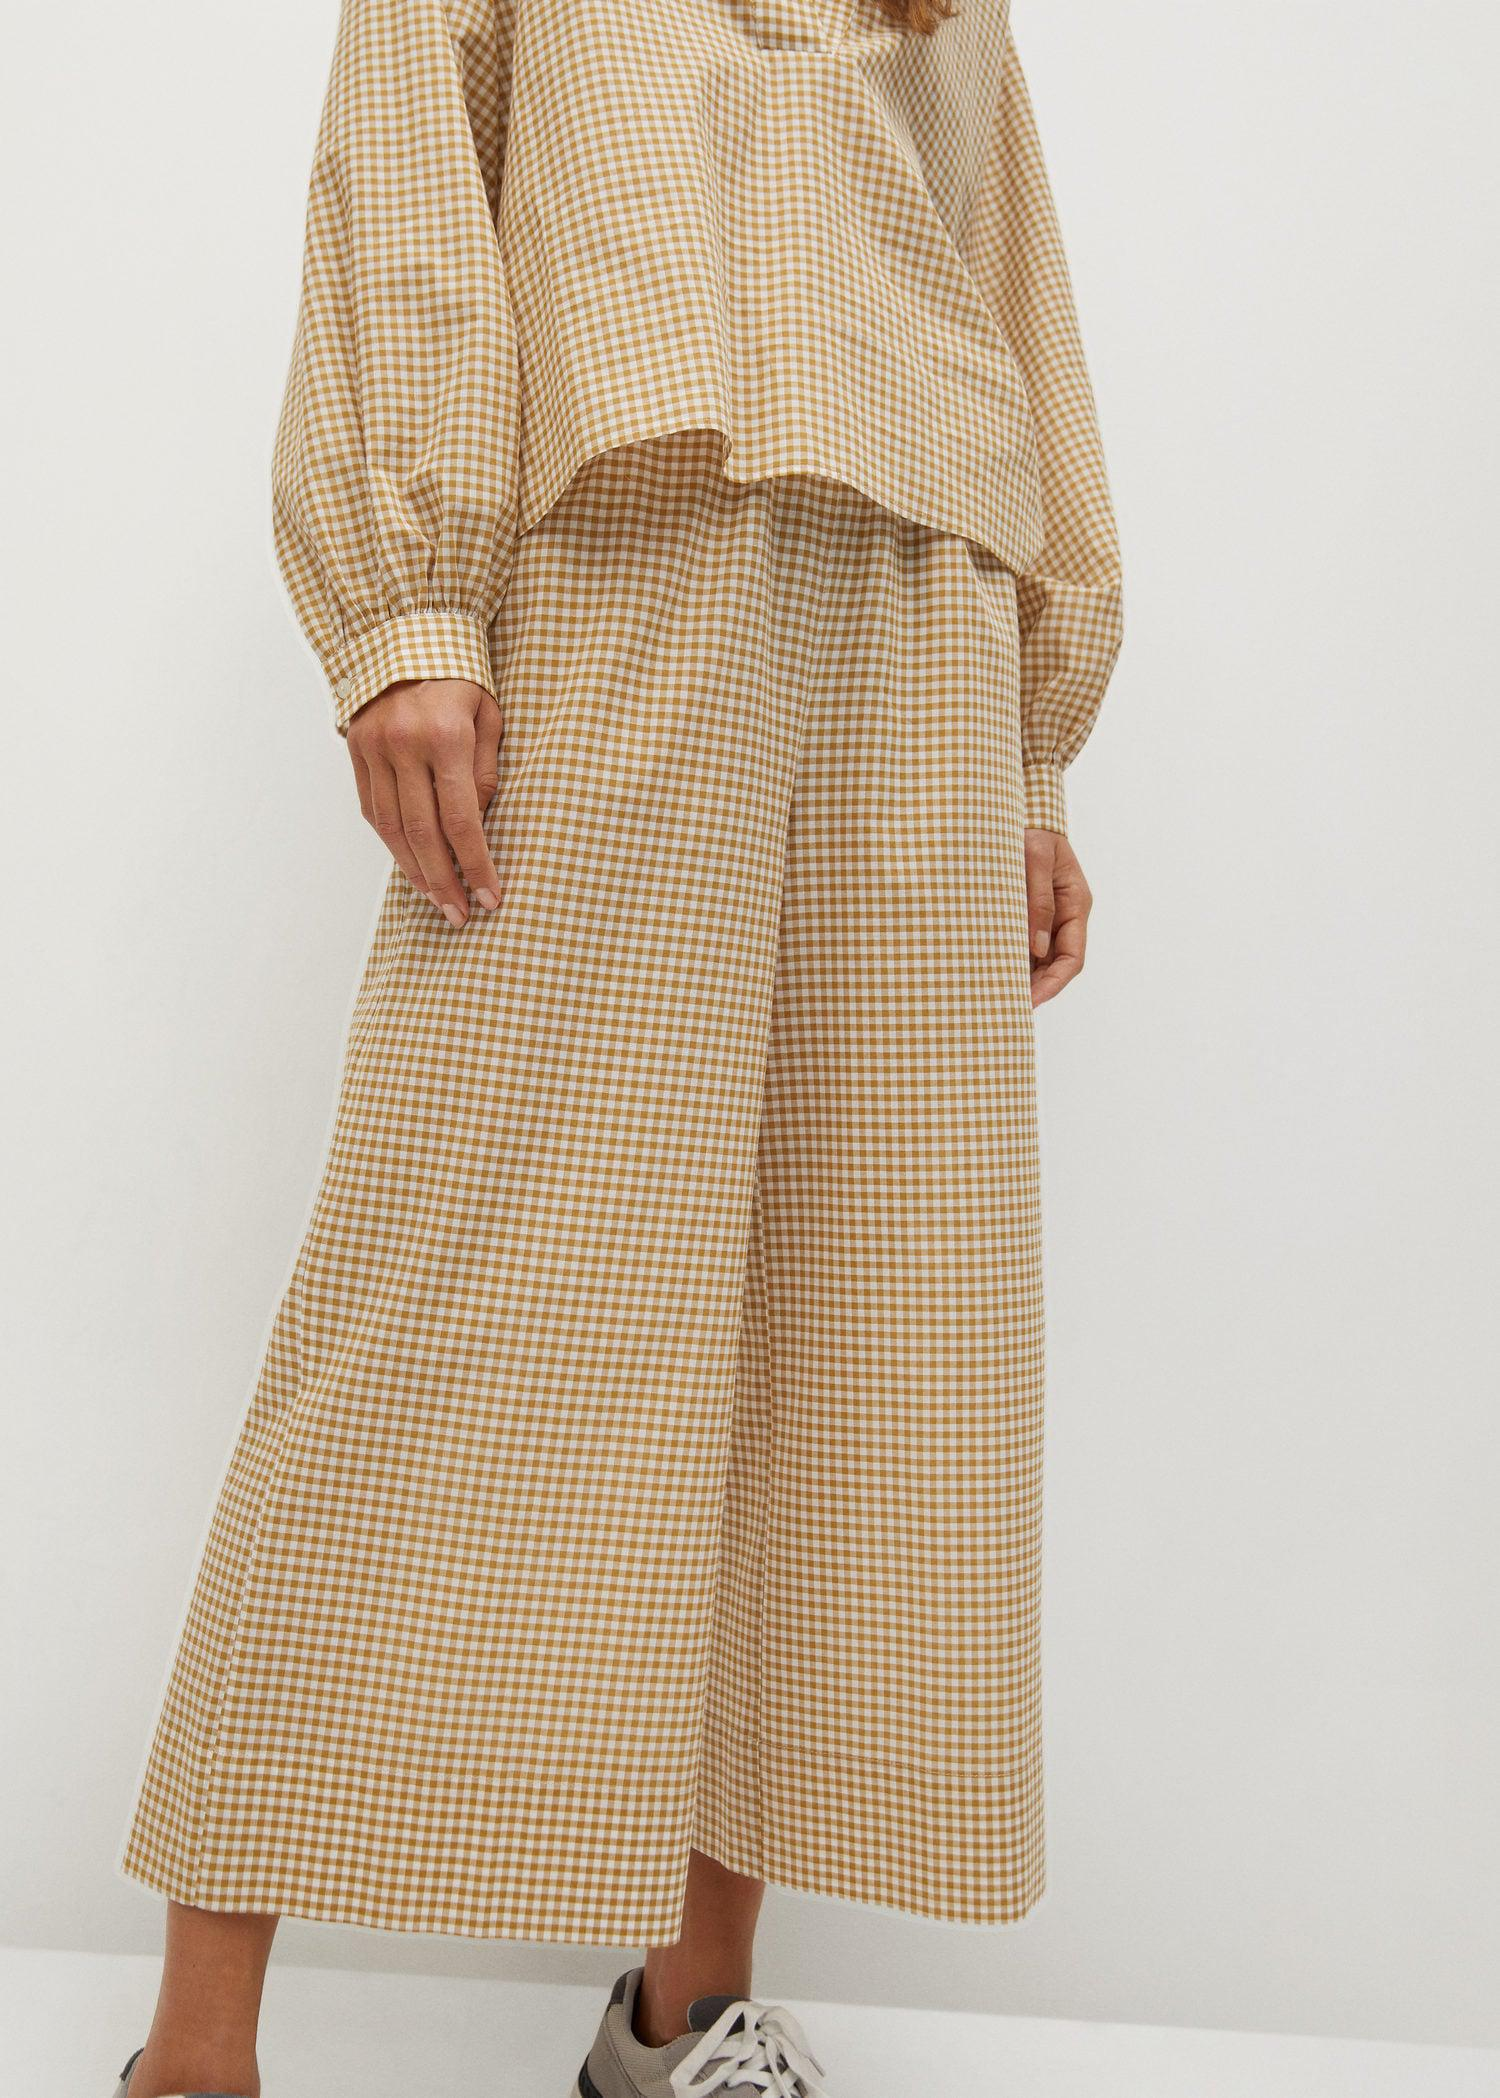 Gingham check culotte pants